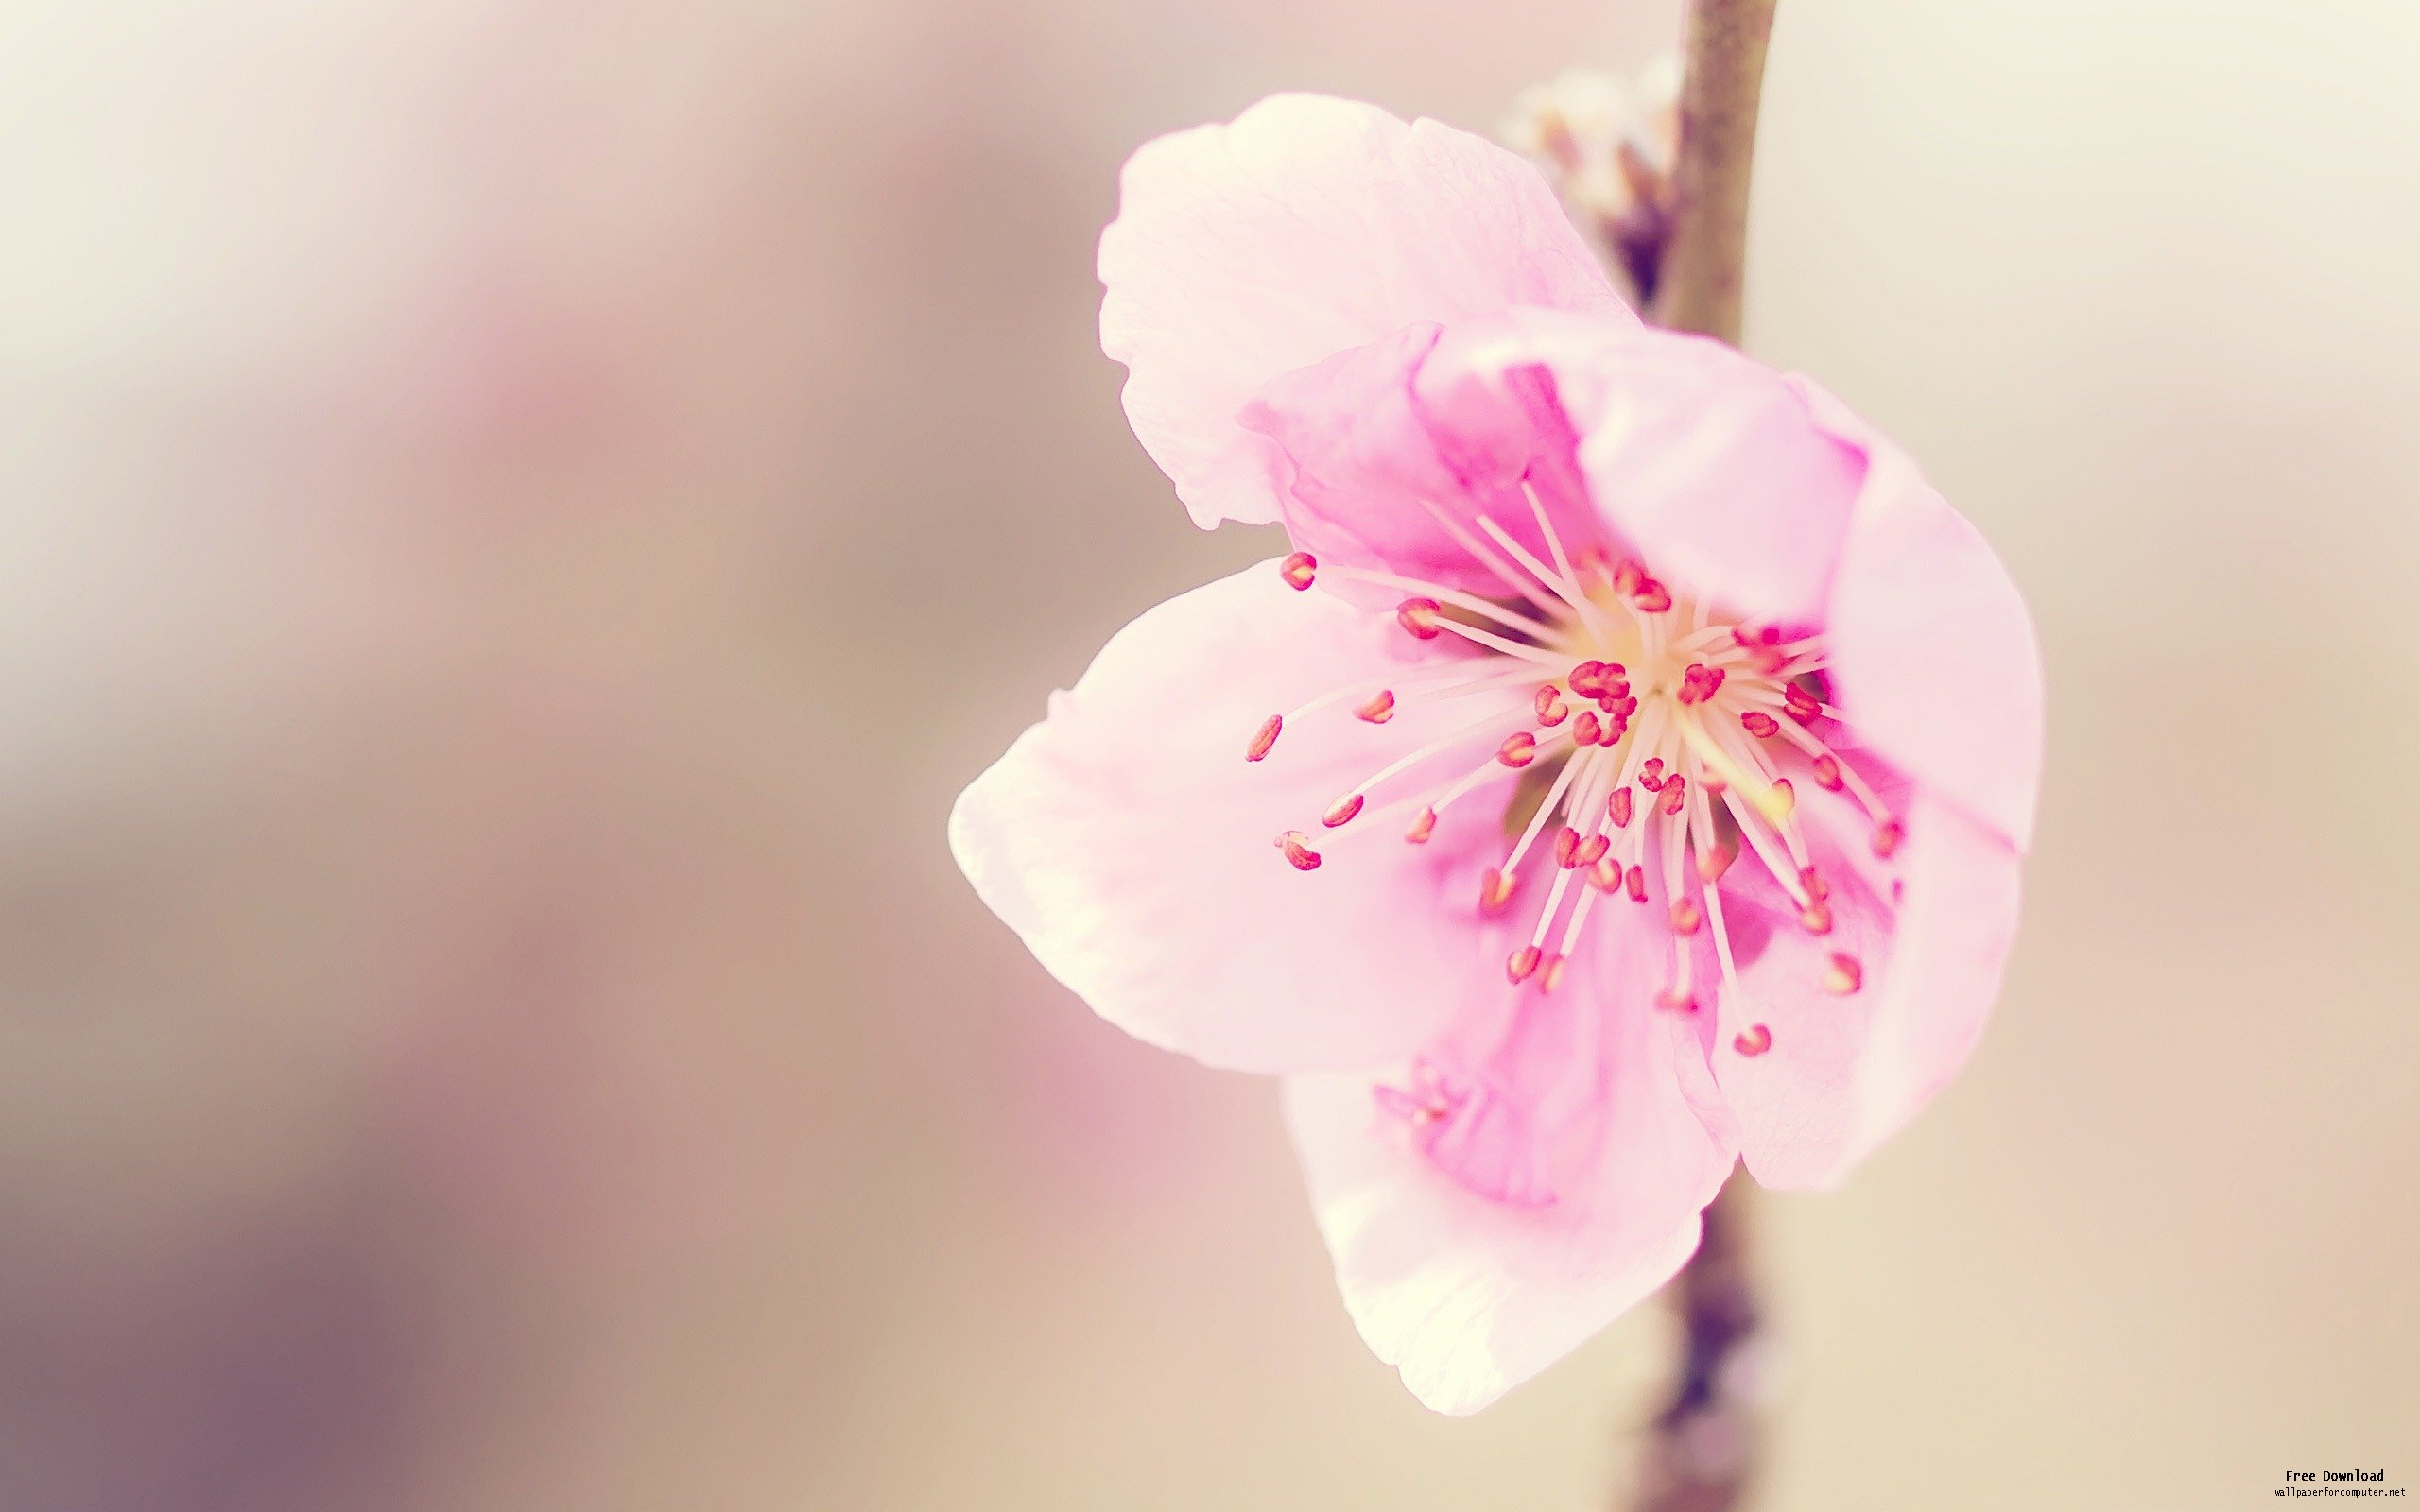 Asian Flower Wallpaper: Pretty Pink Flowerflower Macro Photography Wallpapers View 2560x1600px